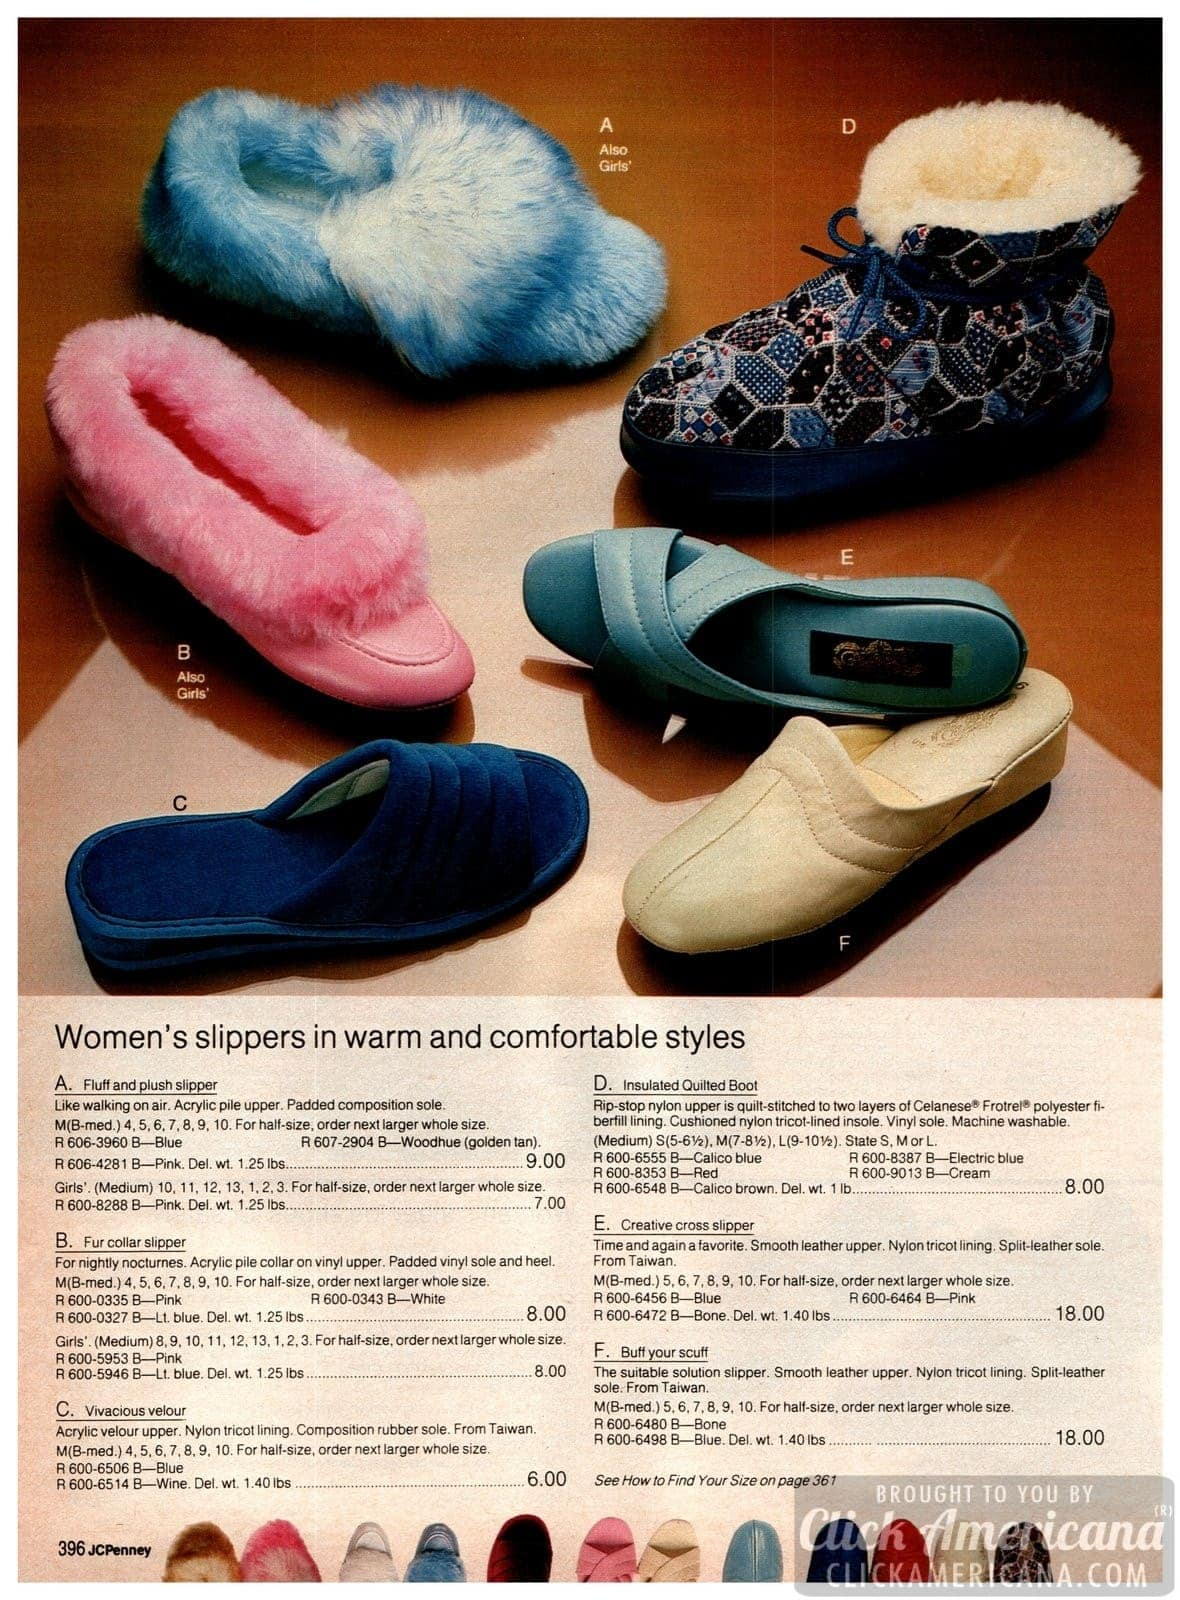 Retro slippers for women - warm and comfortable styles - velour, faux fur and more